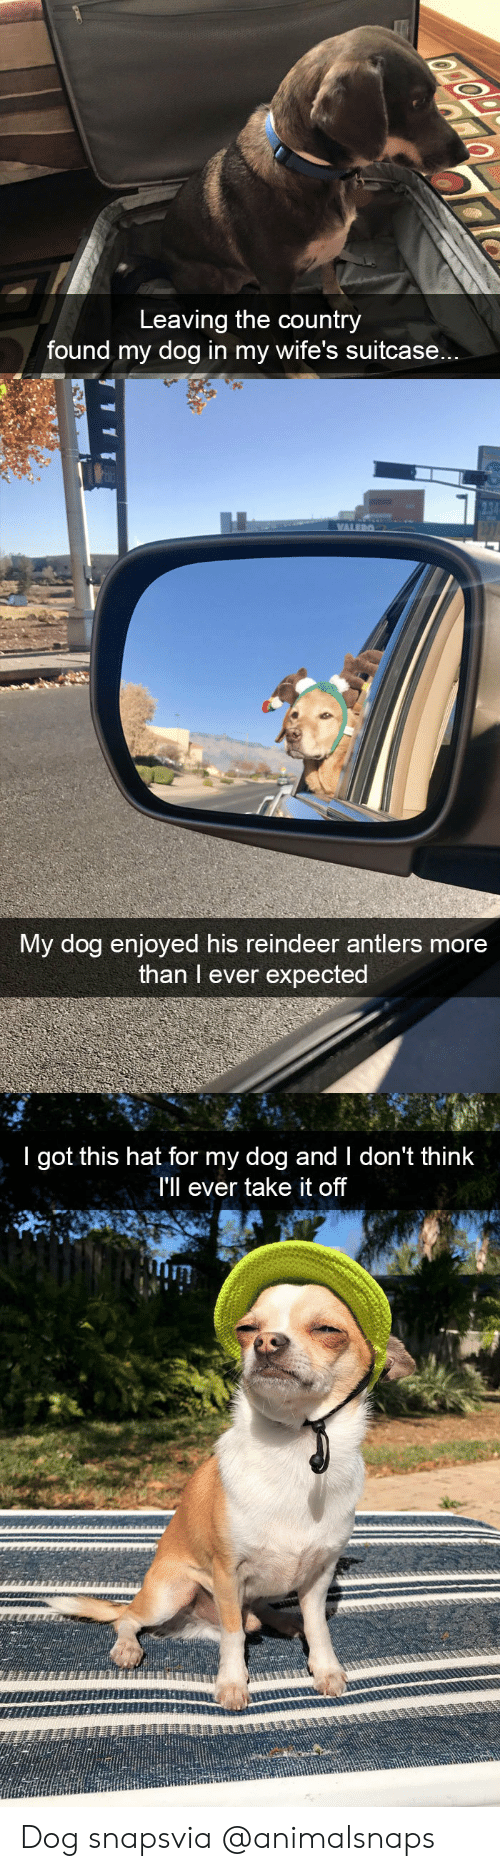 reindeer: Leaving the country  found my dog in my wife's suitcase...   My dog enjoyed his reindeer antlers more  than I ever expected   I got this hat for my dog and I don't think  I'll ever take it off  Tin Dog snapsvia @animalsnaps